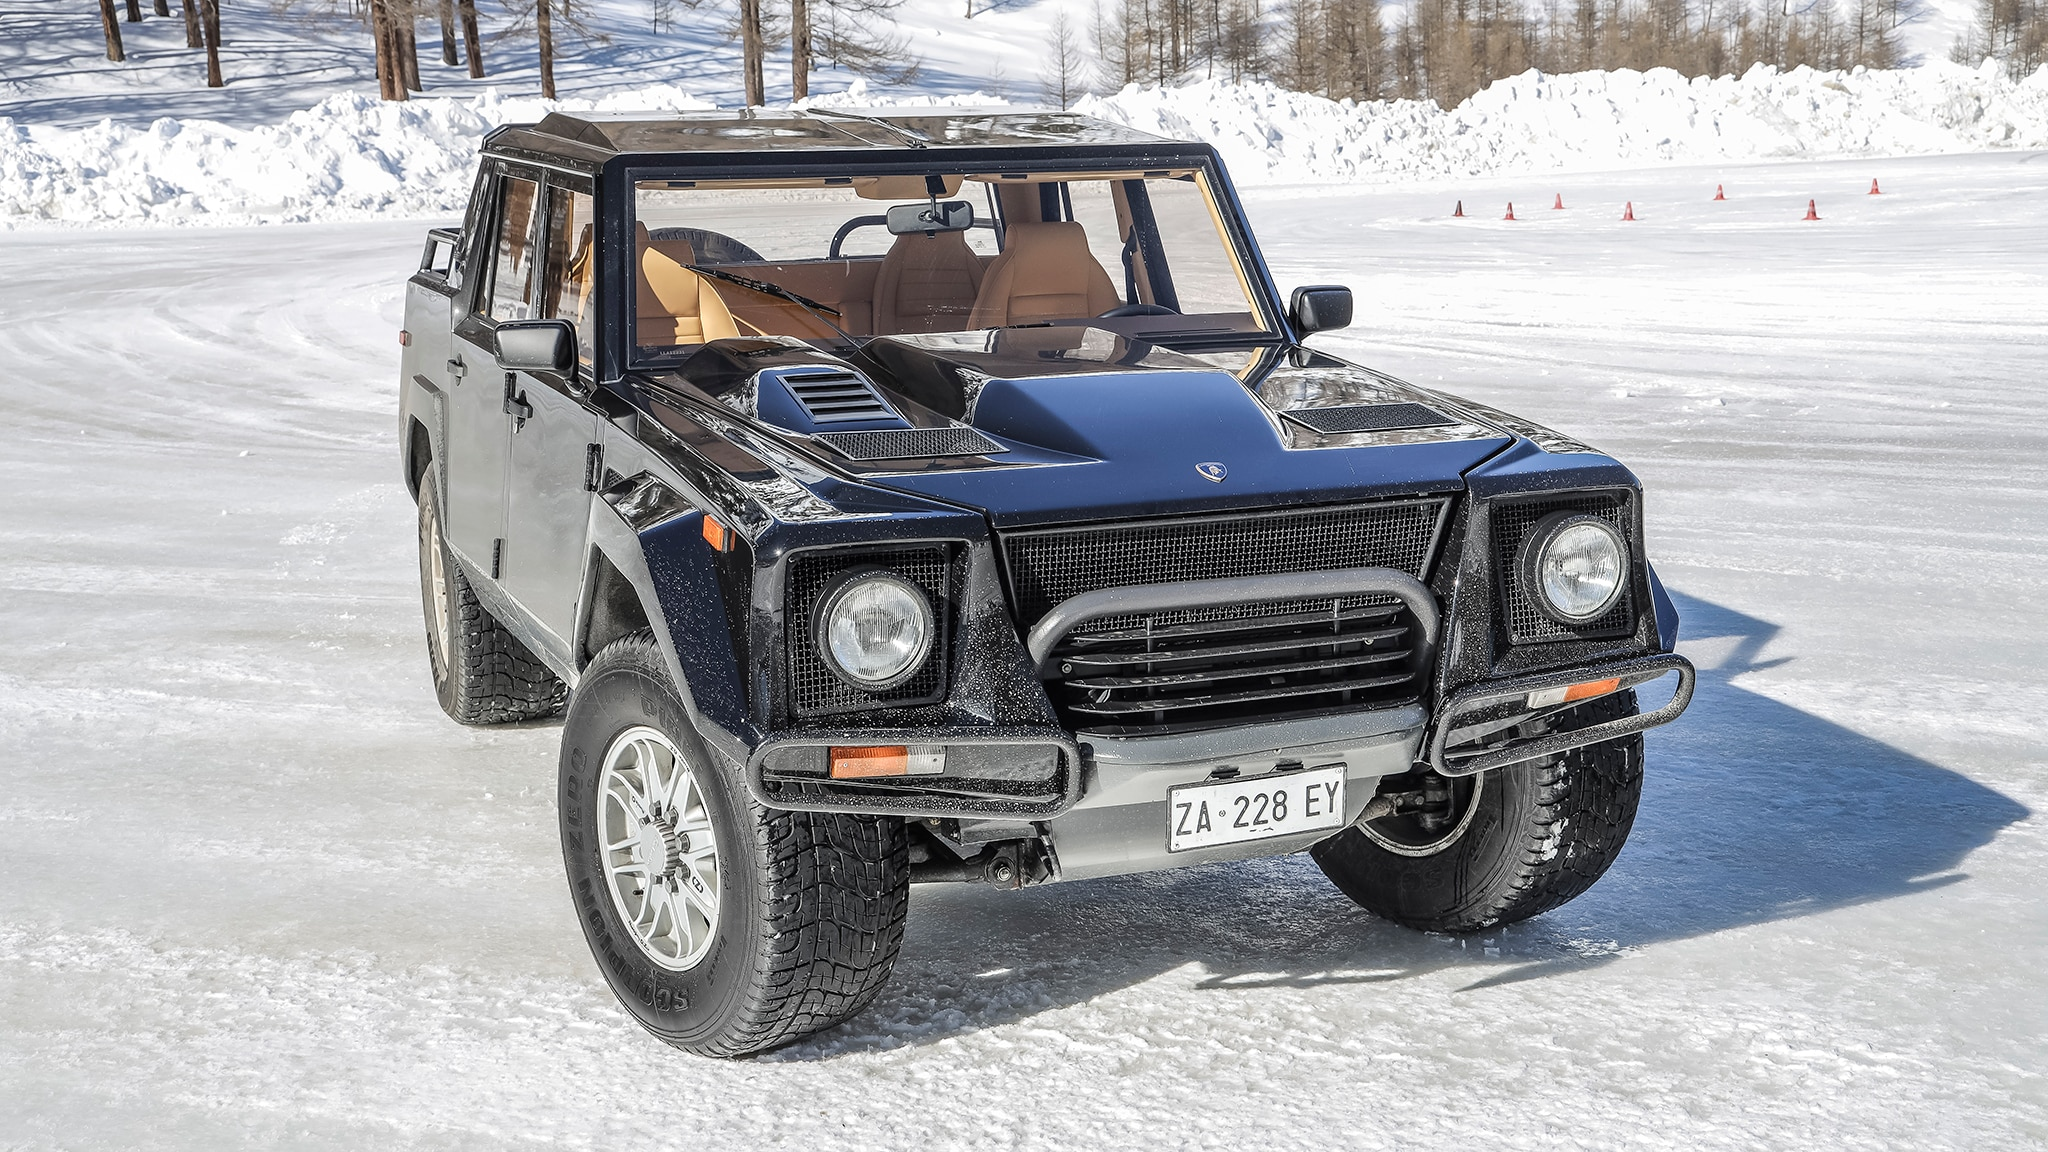 Why The Lamborghini Lm002 Suv Might Be The Most Insane 80s Car